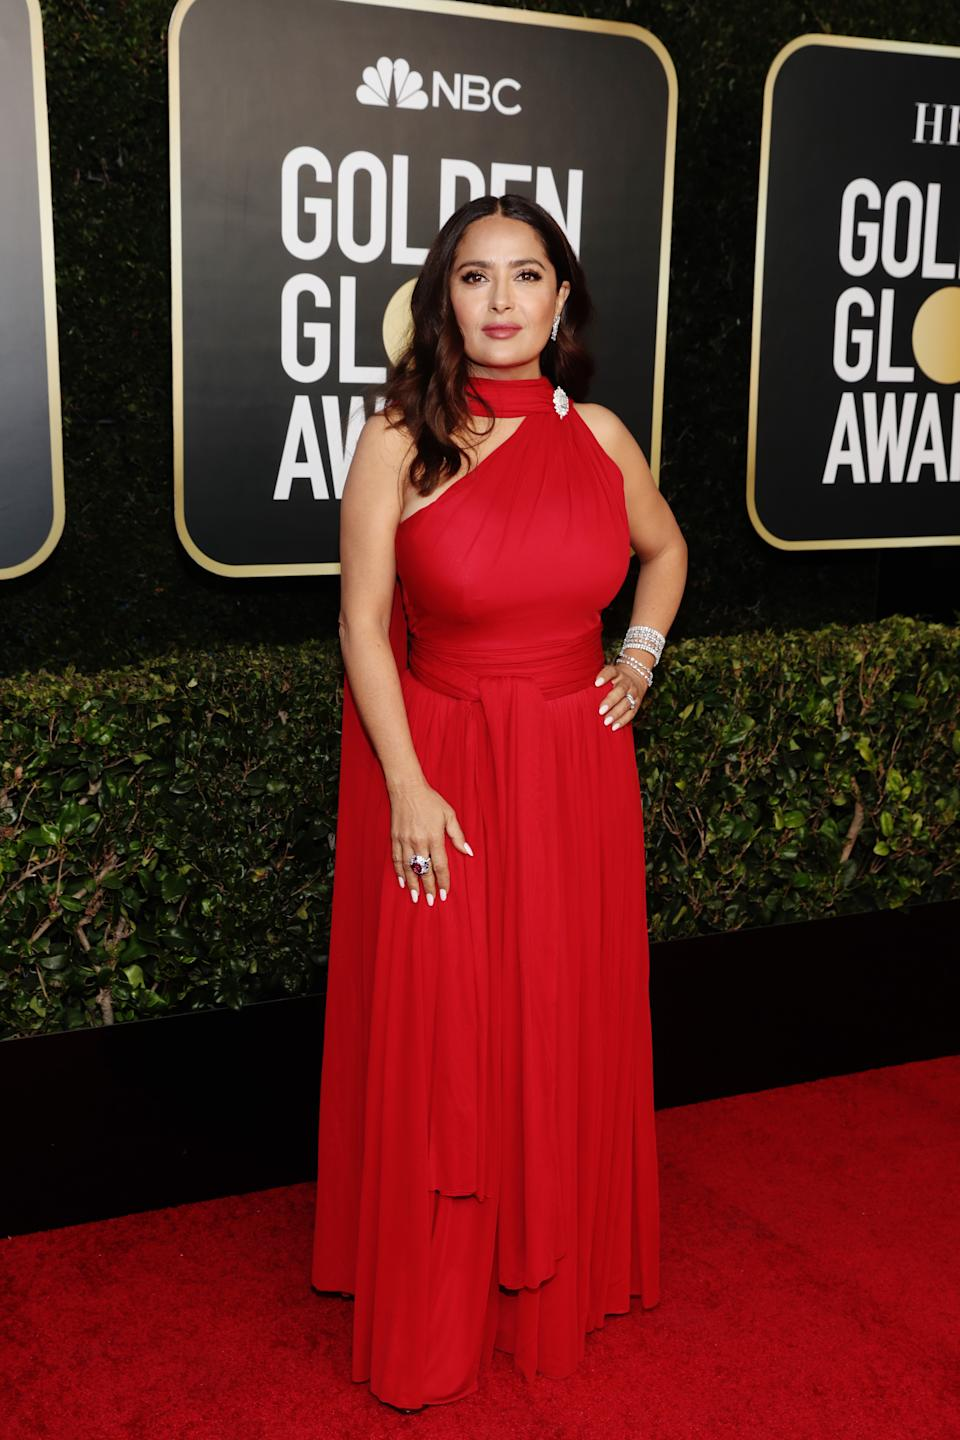 Salma Hayek attends the 78th Annual Golden Globe Awards held at The Beverly Hilton and broadcast on February 28, 2021 in Beverly Hills, California